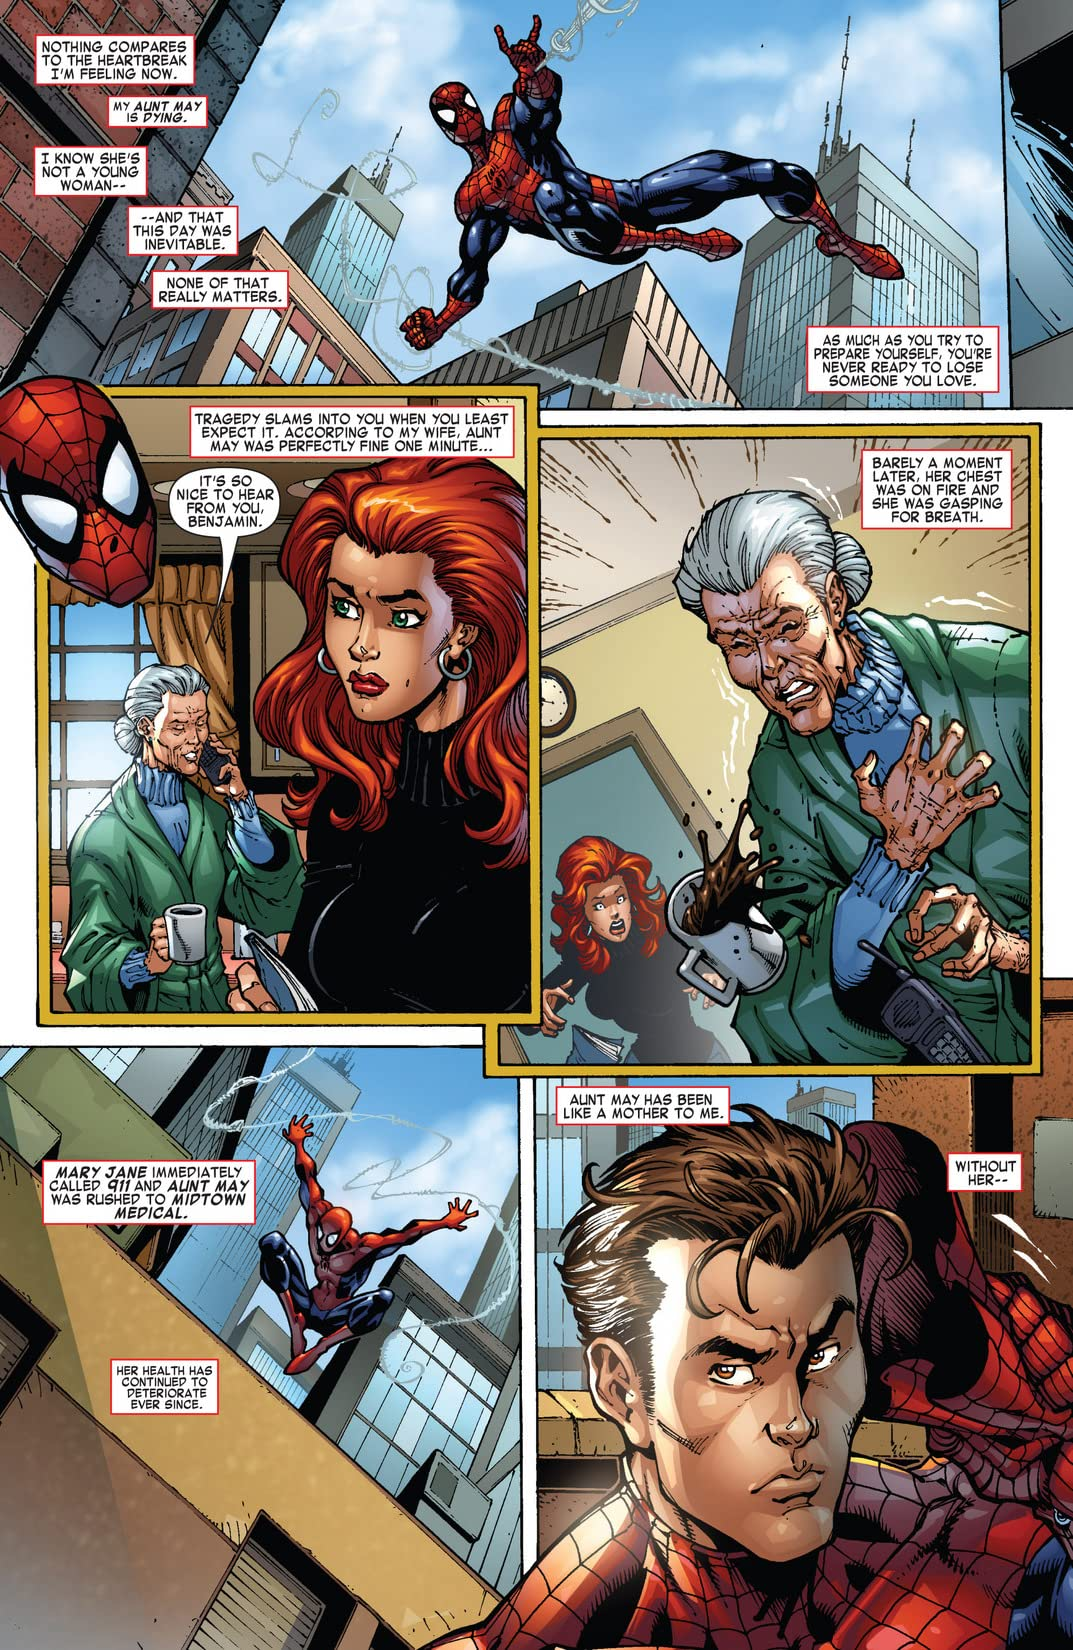 Spider-Man: The Clone Saga #1 (of 6)